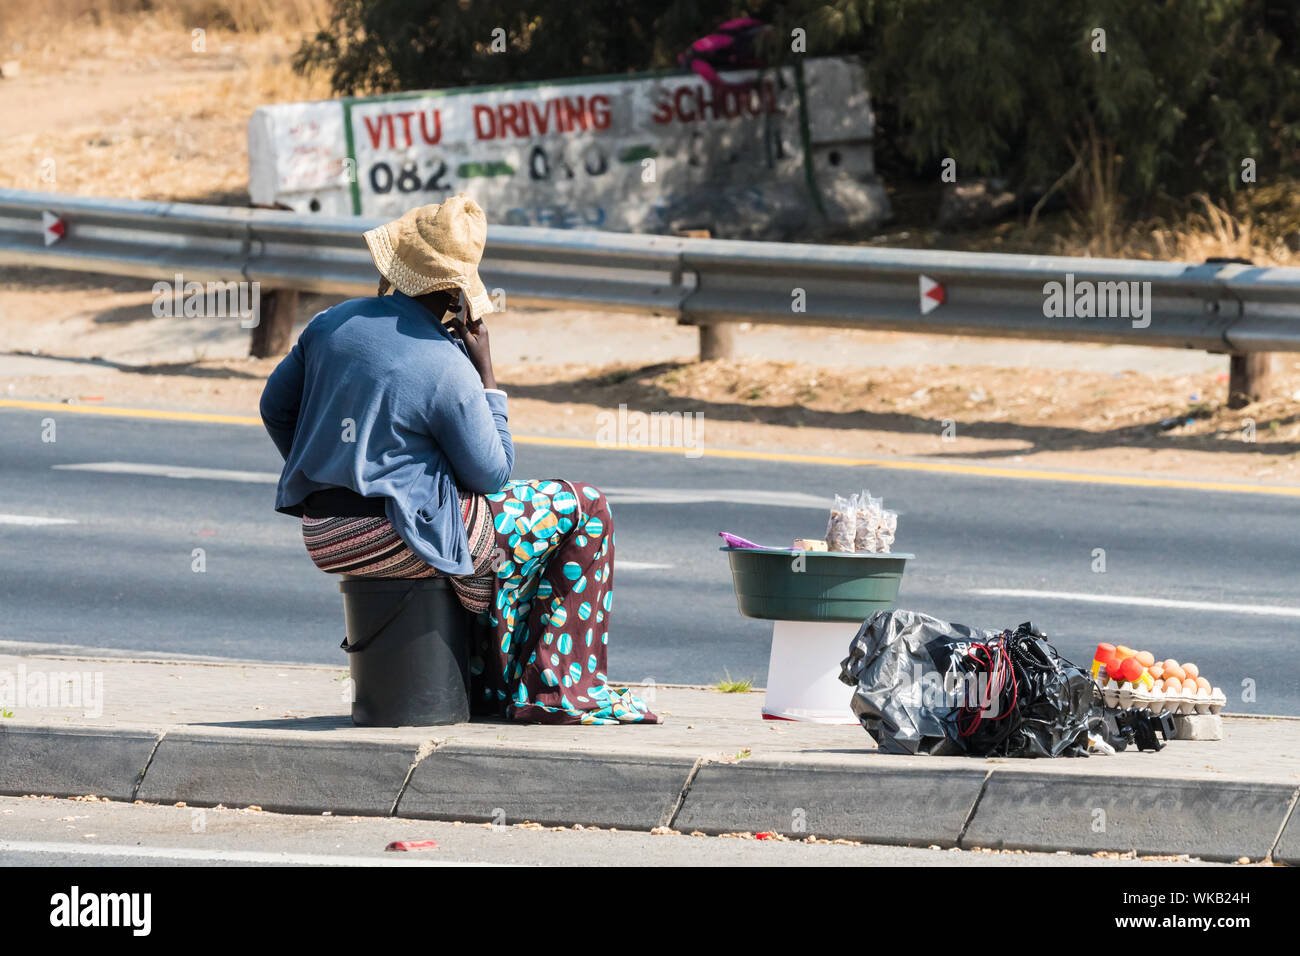 black African street vendor or seller in the road in Johannesburg, Gauteng, South Africa concept daily life in Africa Stock Photo